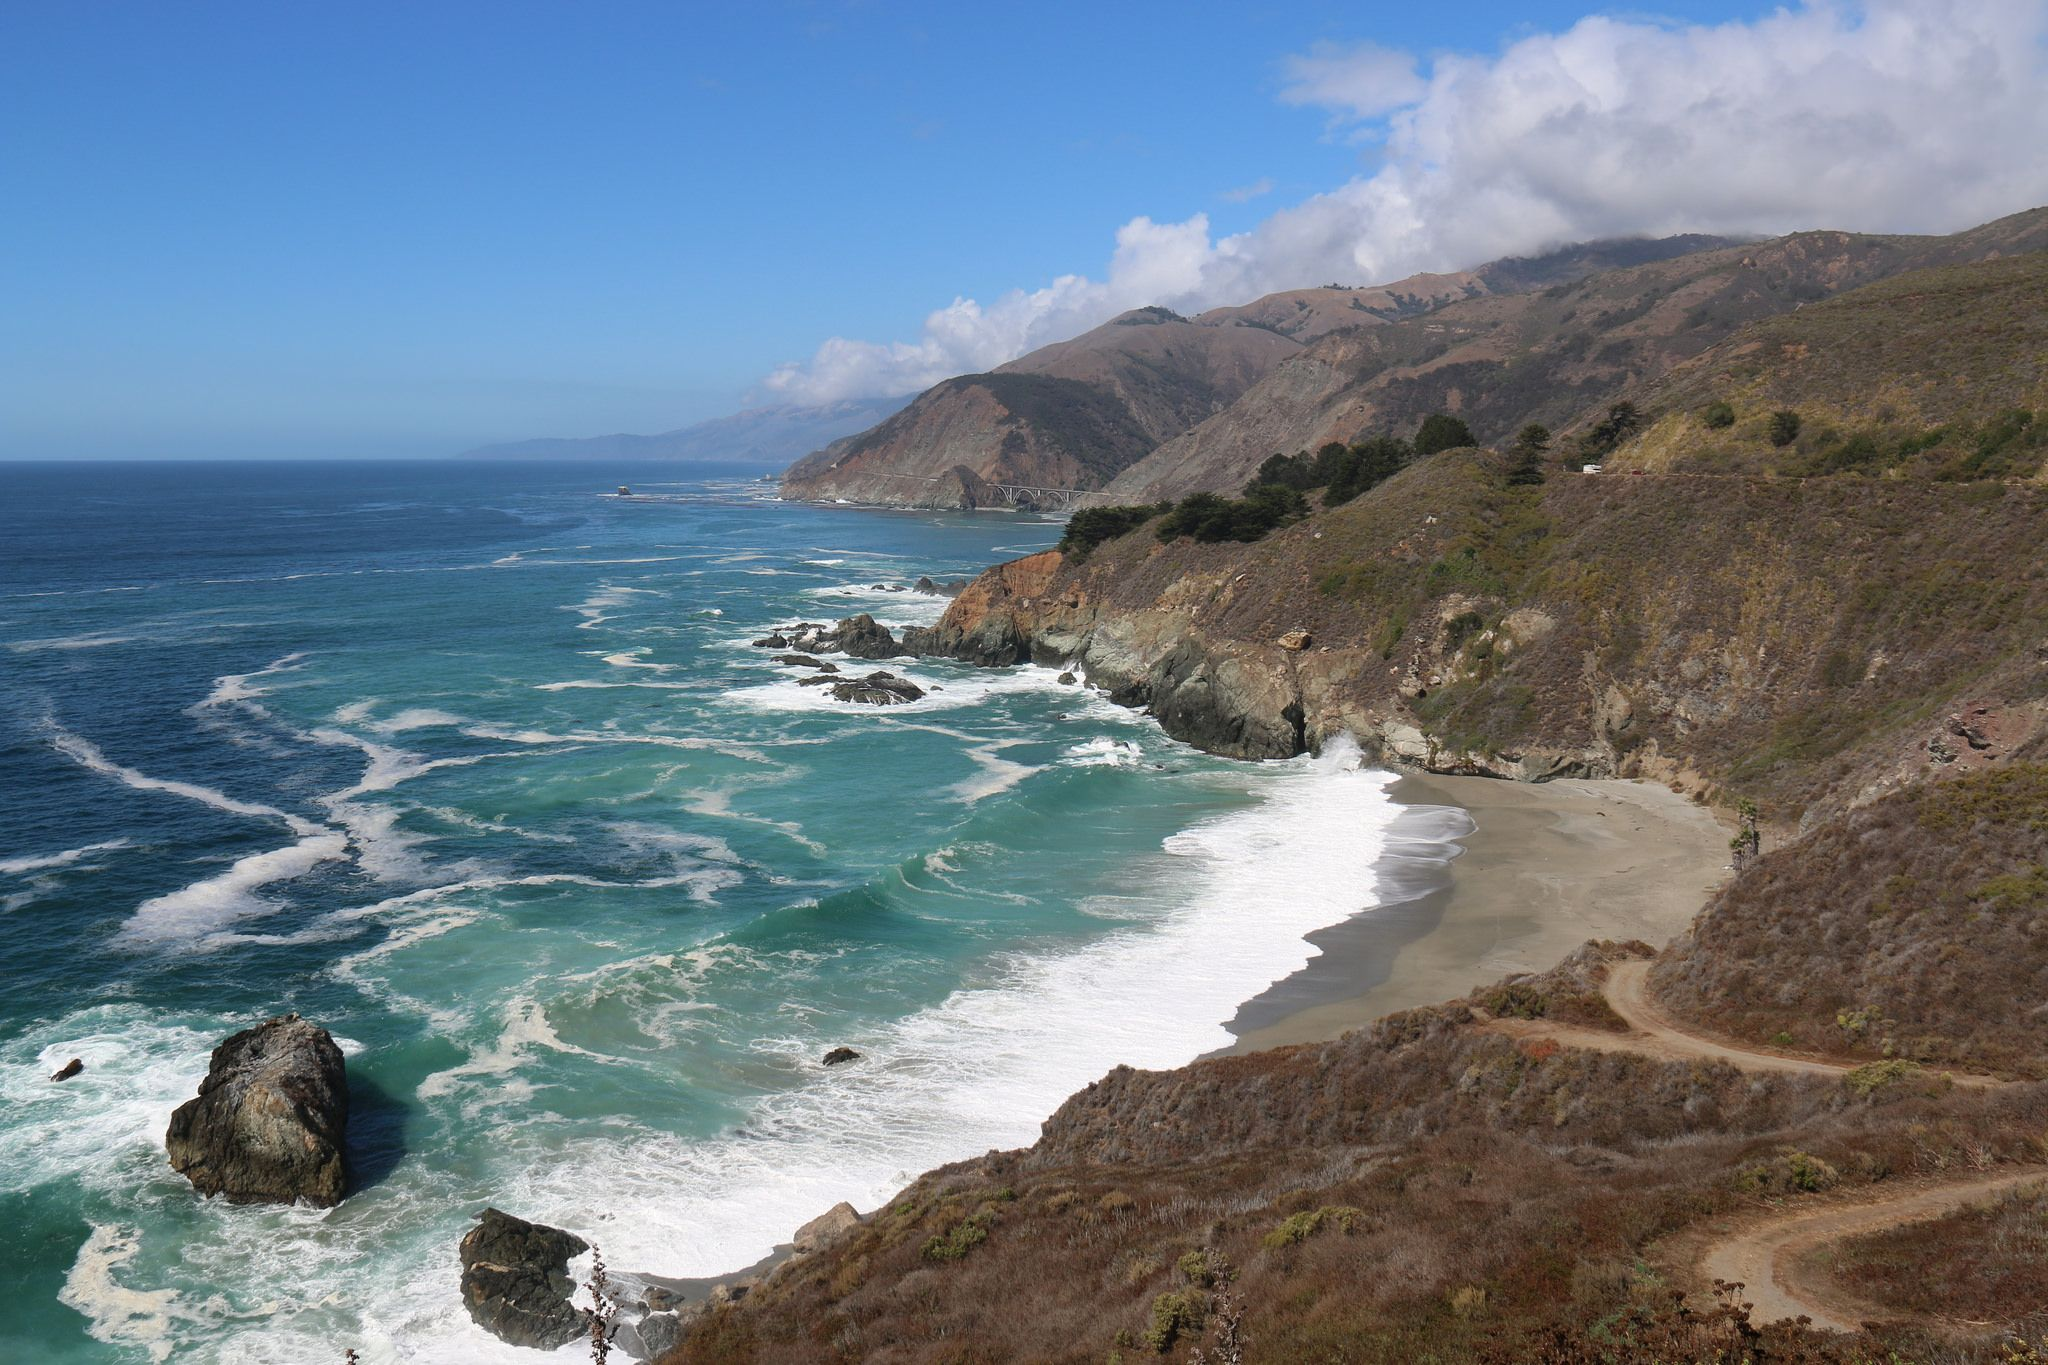 Beach along Big Sur | Big Sur is an area of central California coastline where the Santa Lucia Mountains rise in steep, jagged formations from the Pacific Ocean. (pinned by haw-creek.com)